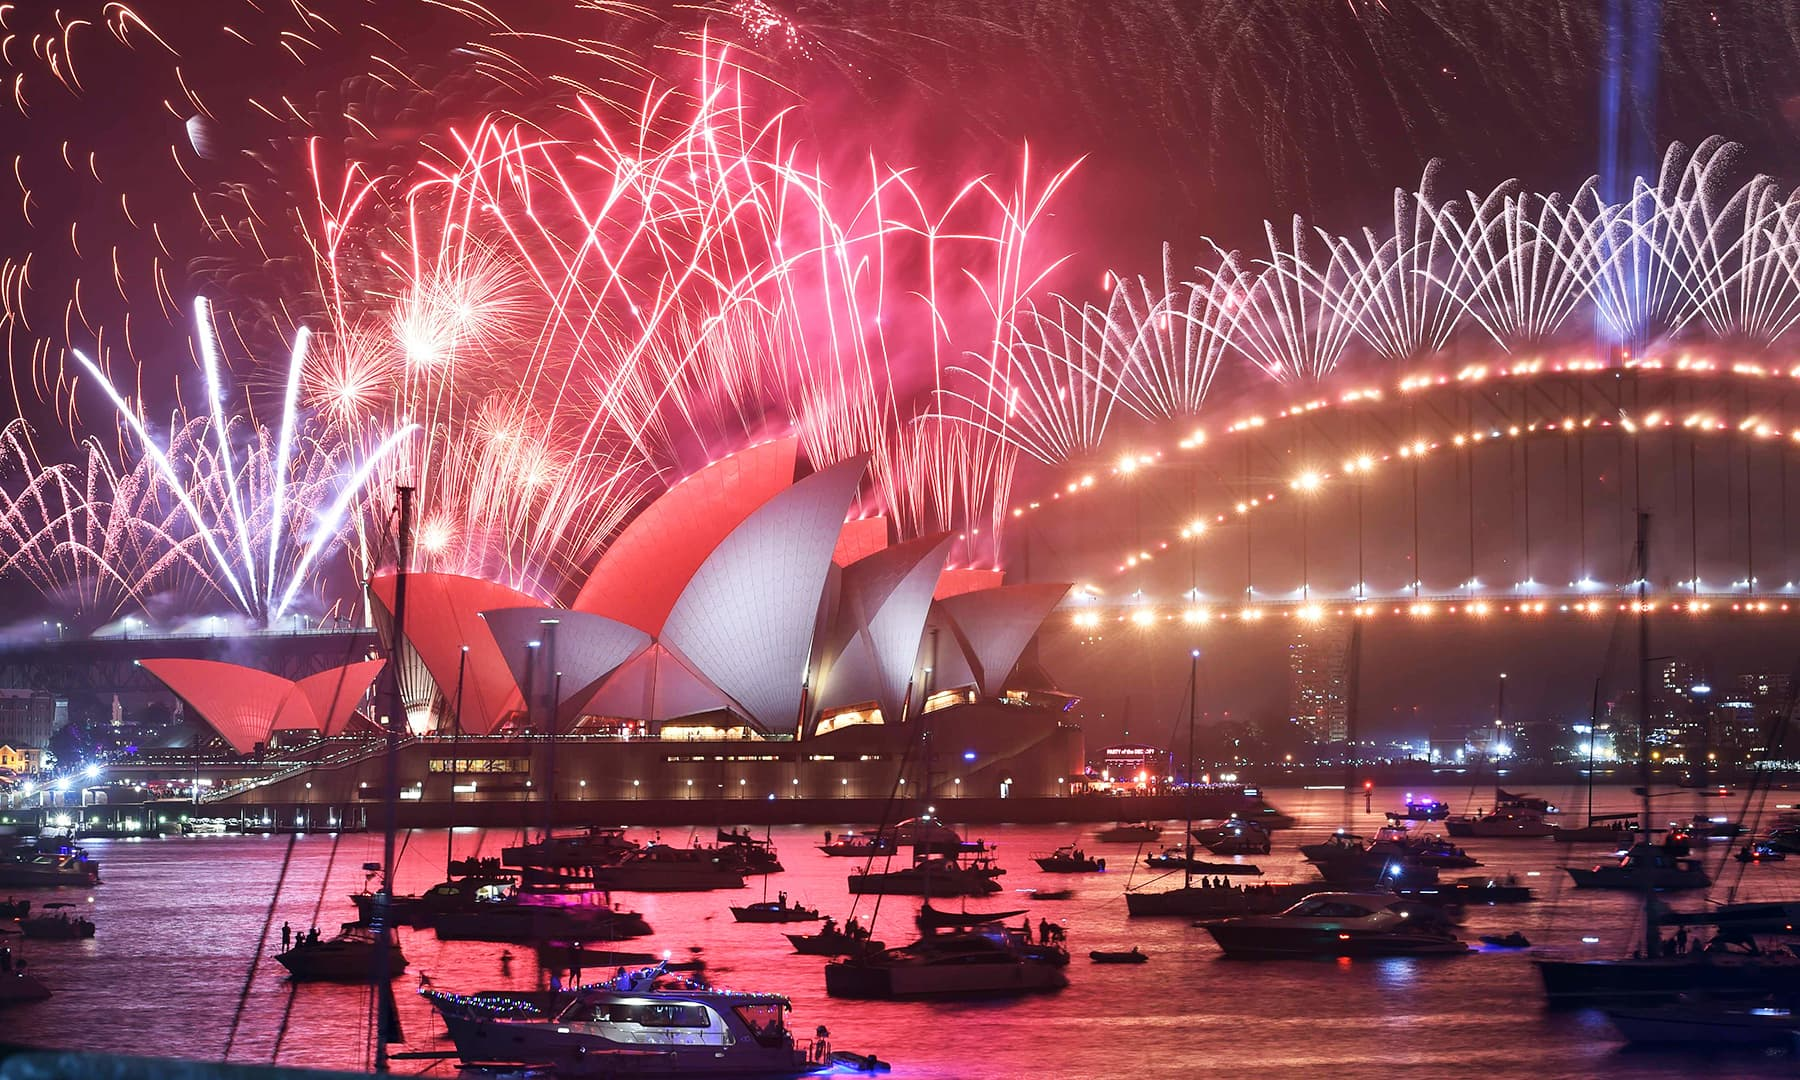 New Year's Eve fireworks erupt over Sydney's iconic Harbour Bridge and Opera House (L) during the fireworks show on January 1, 2020. — AFP